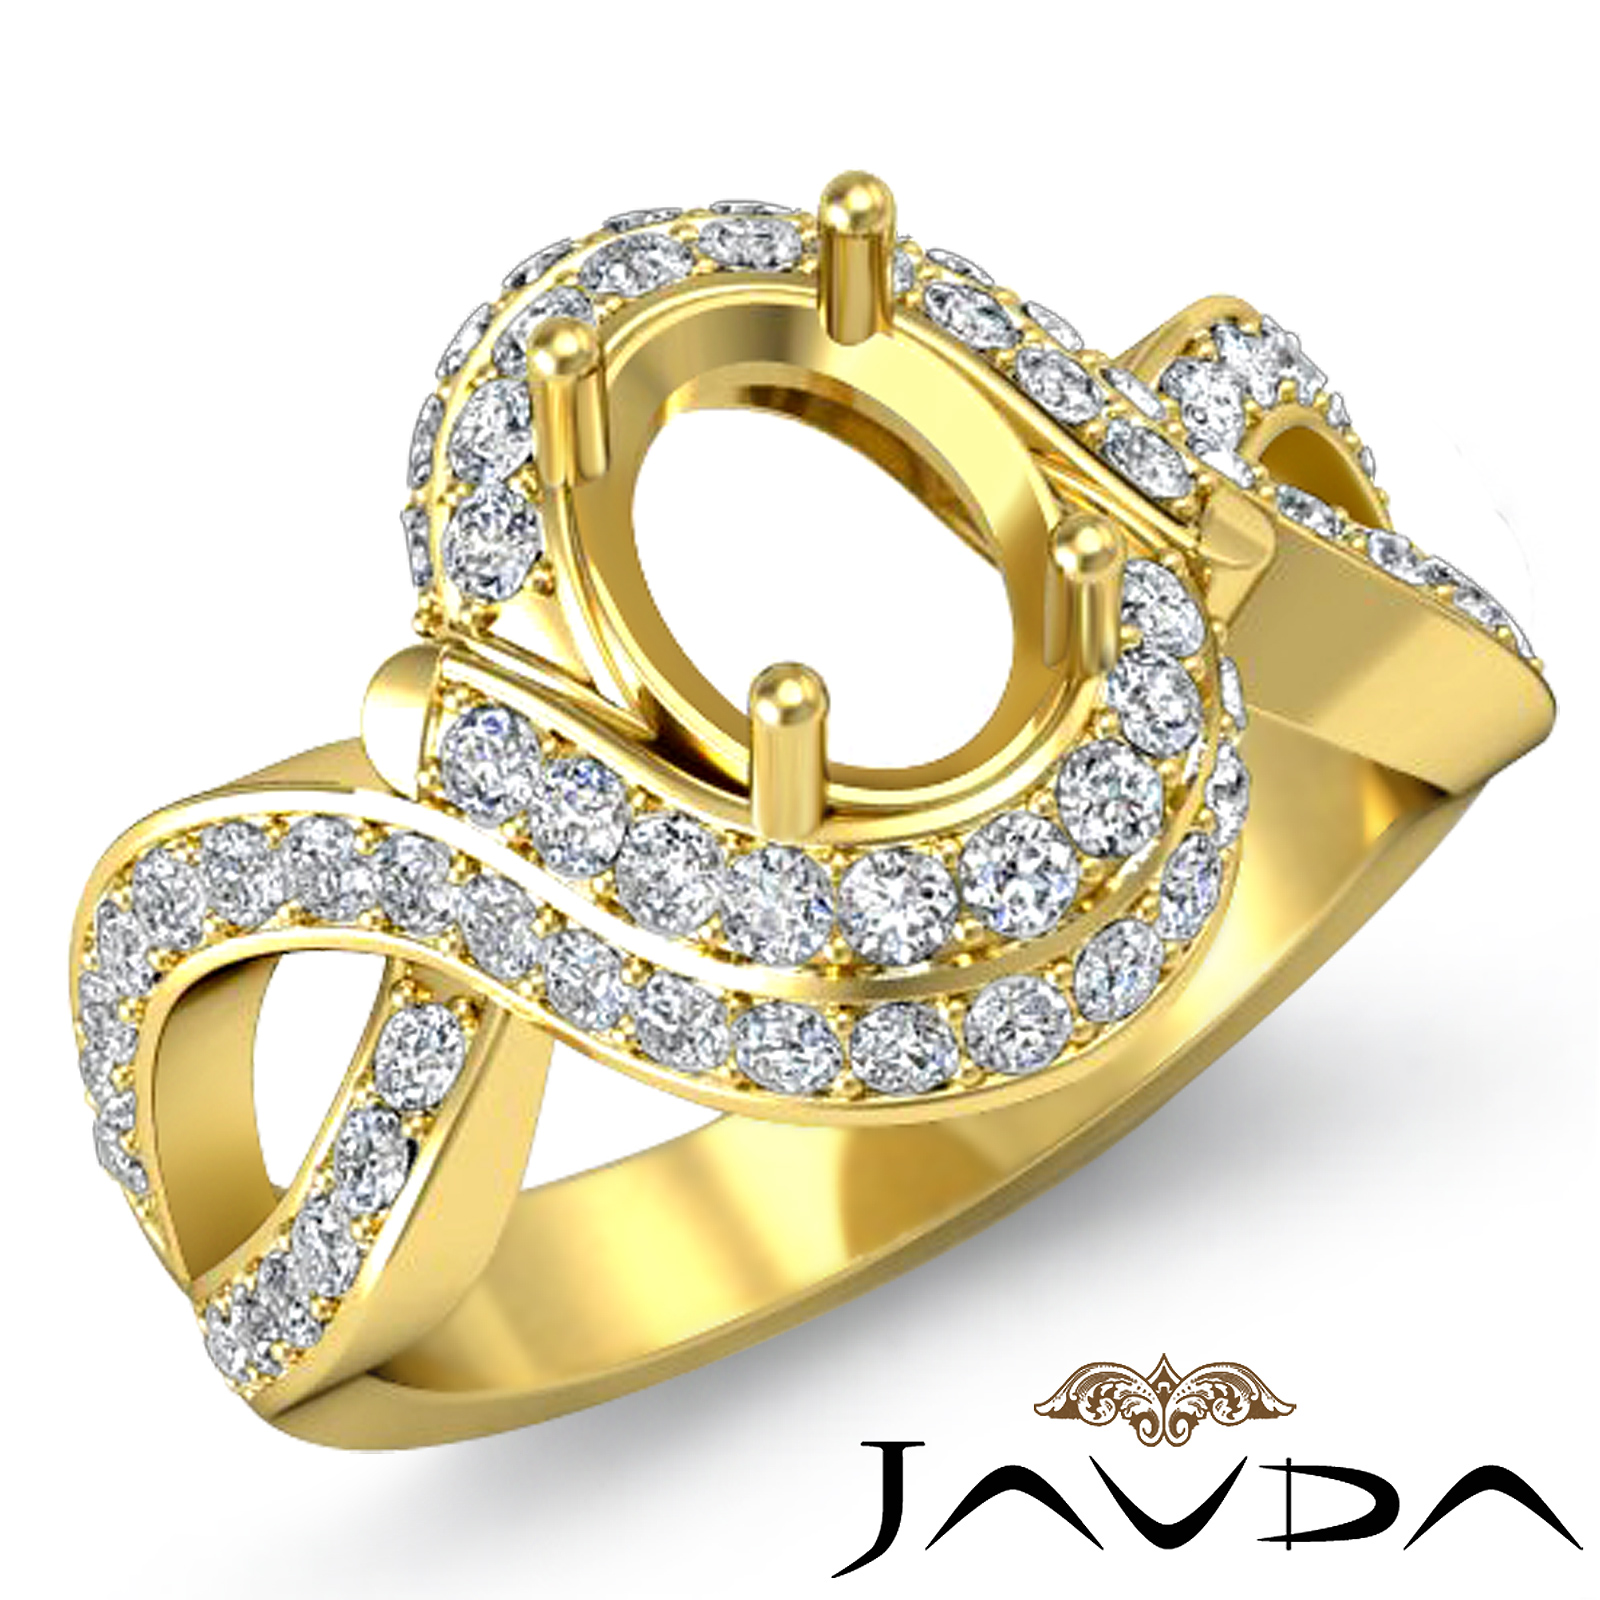 Diamond Engagement Antique Ring Oval Semi Mount 18k Yellow Gold Curve Shank 1